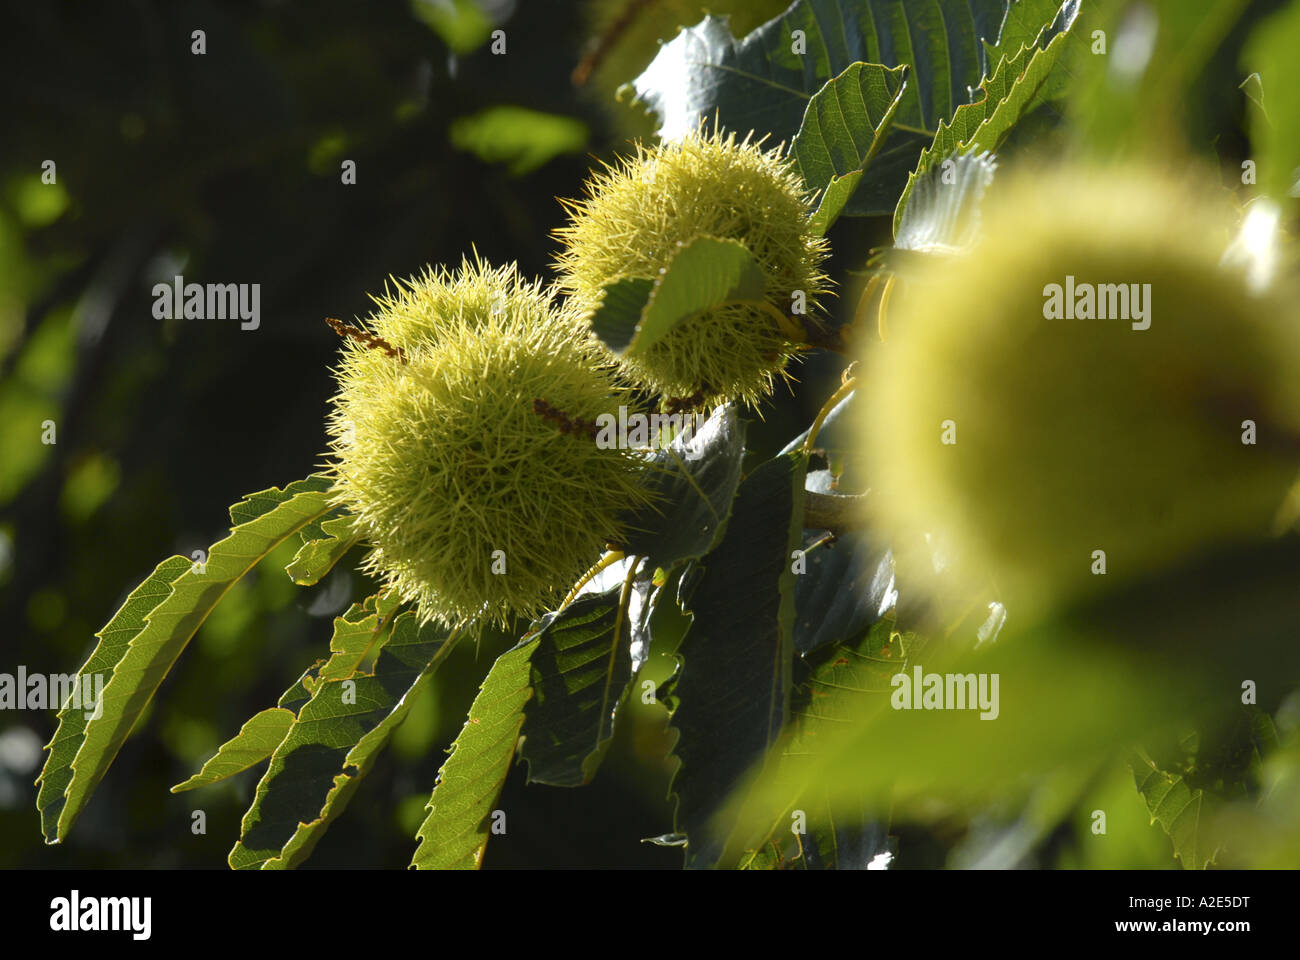 Chestnuts growing in Andalucia Spain Picture by Andrew Hasson September 2006 - Stock Image